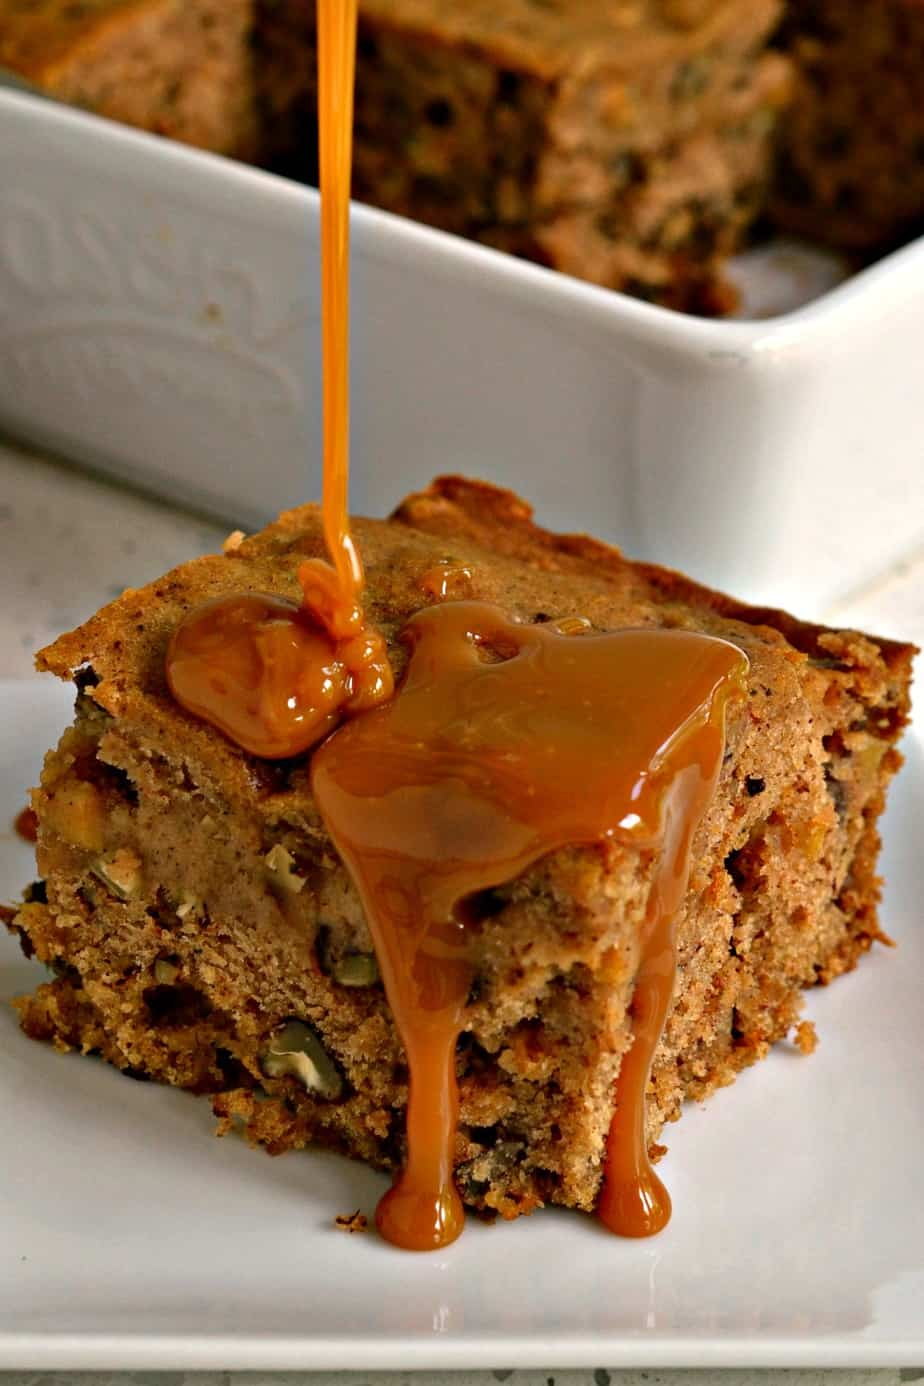 This delicious moist Applesauce Cake is topped with a sweet caramel sauce.